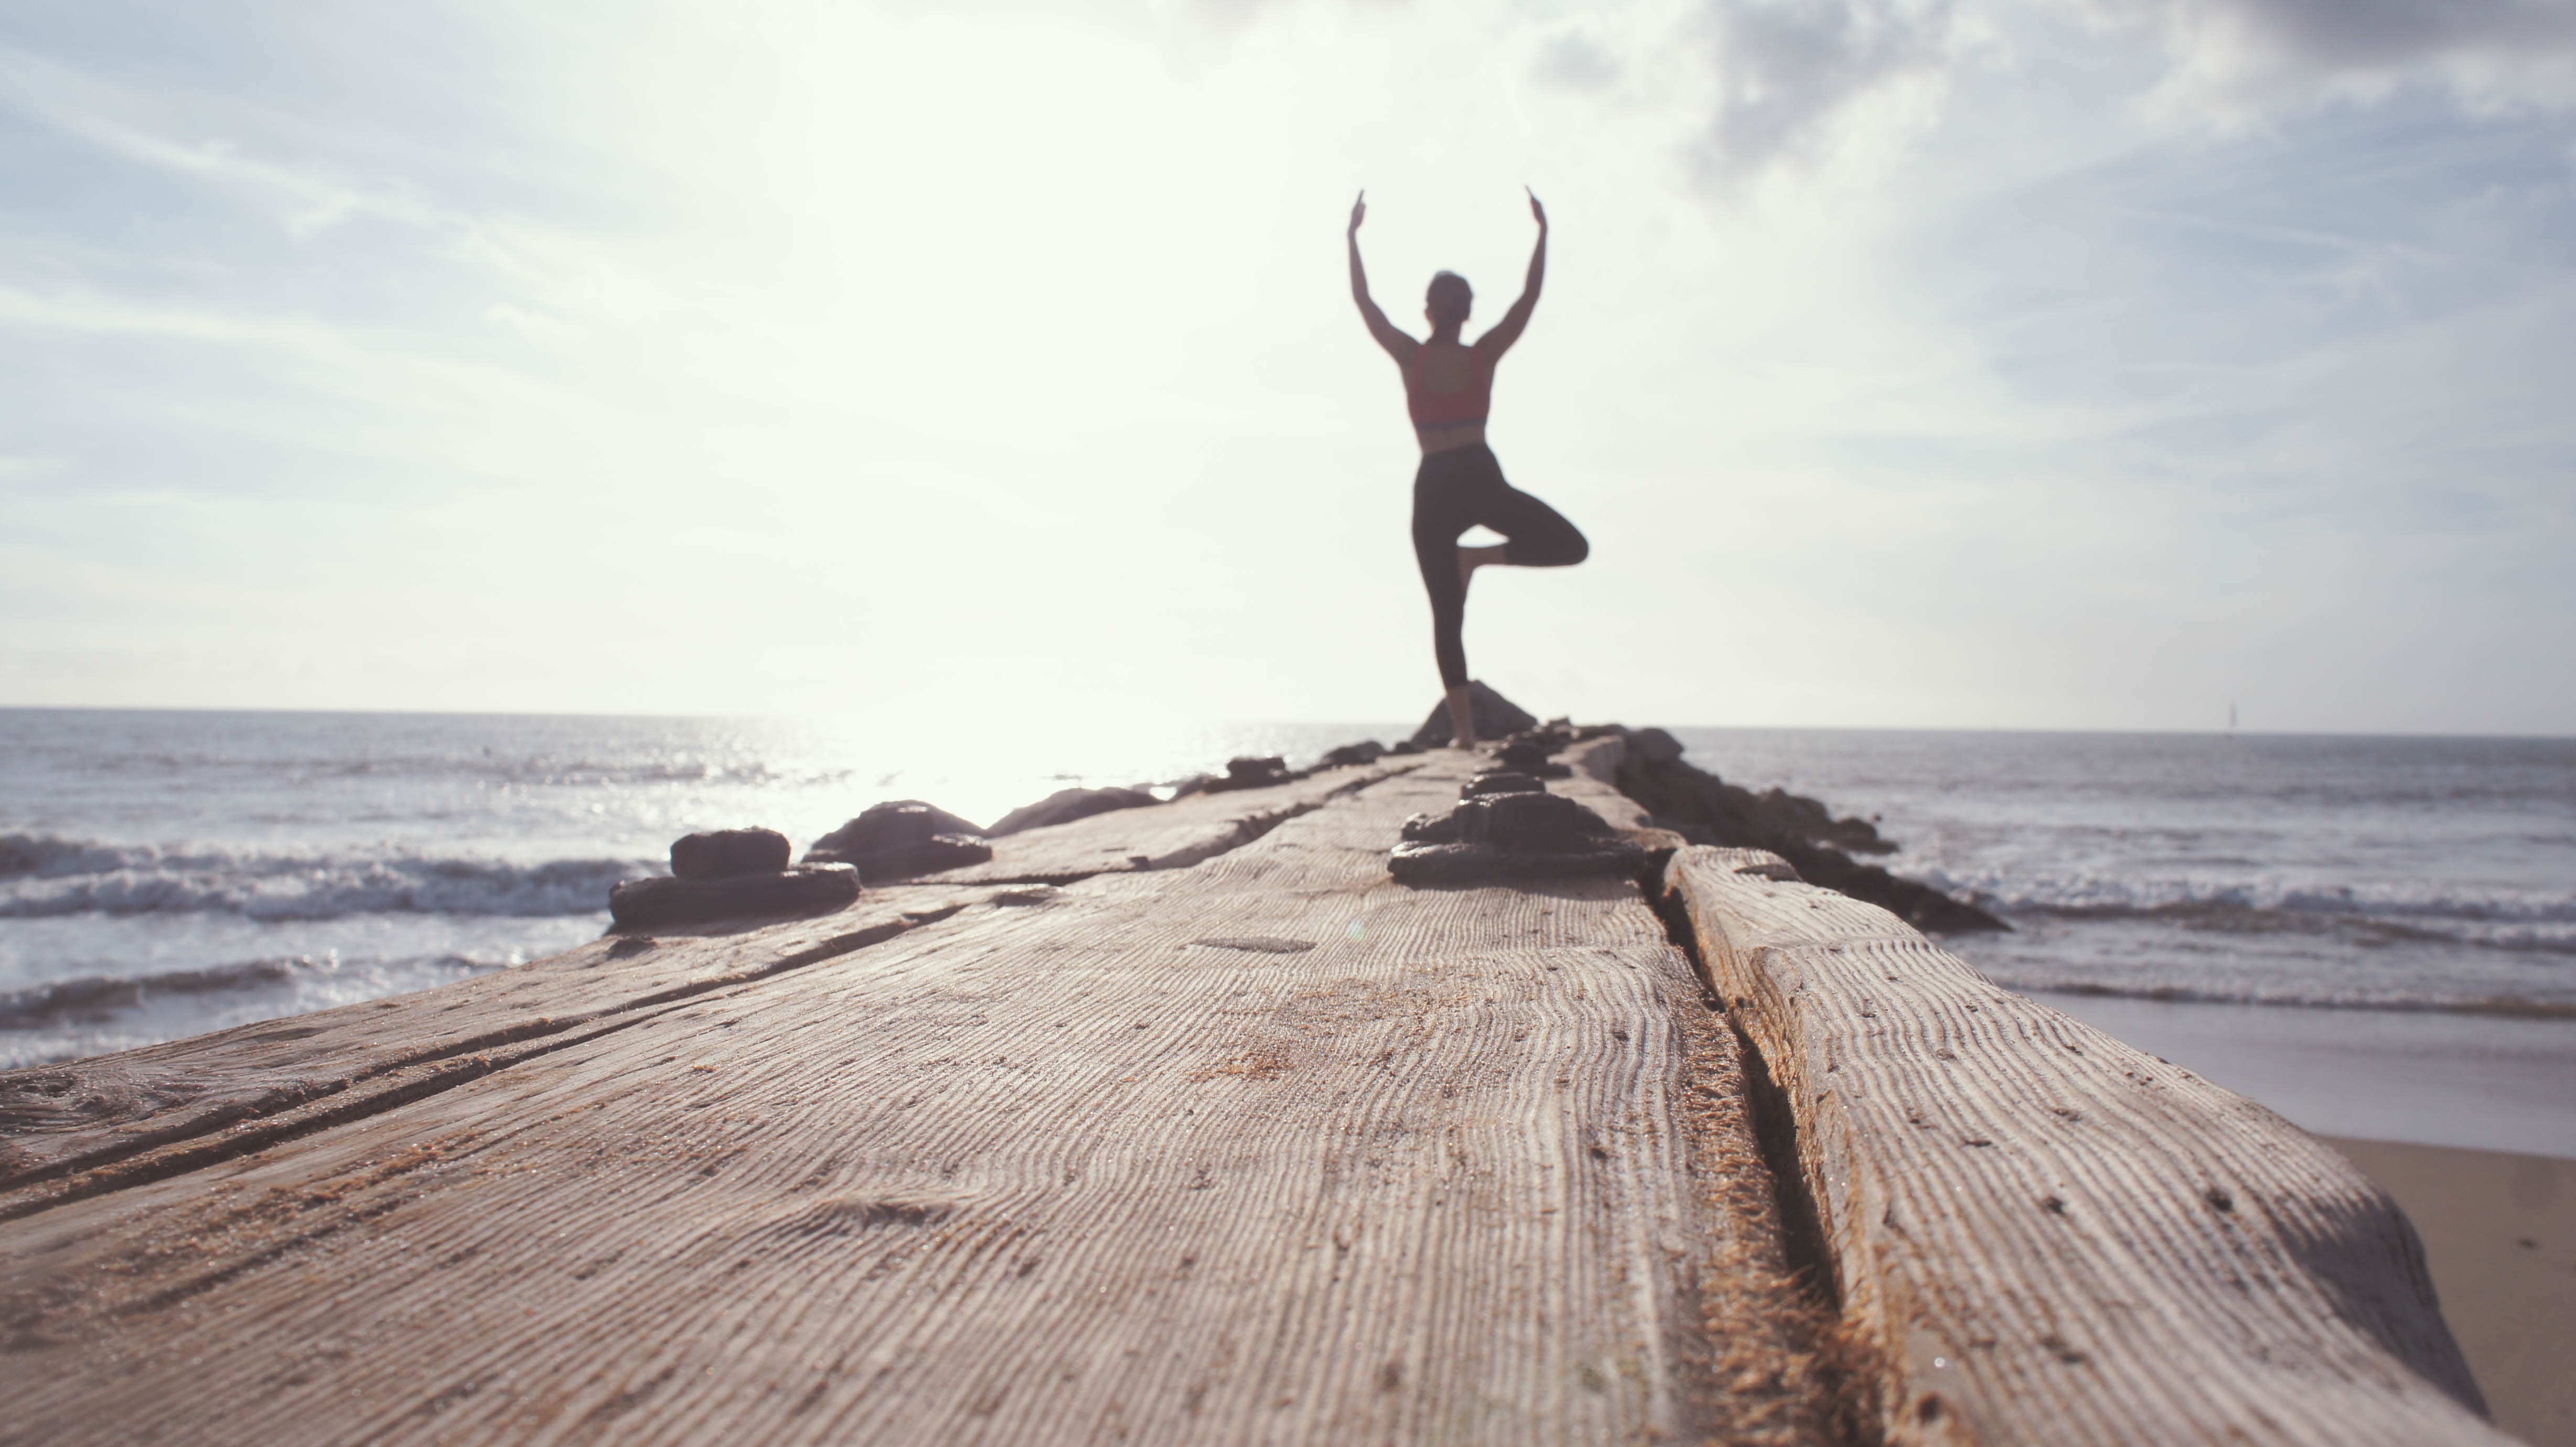 Woman practising Yoga stand at the seashore.